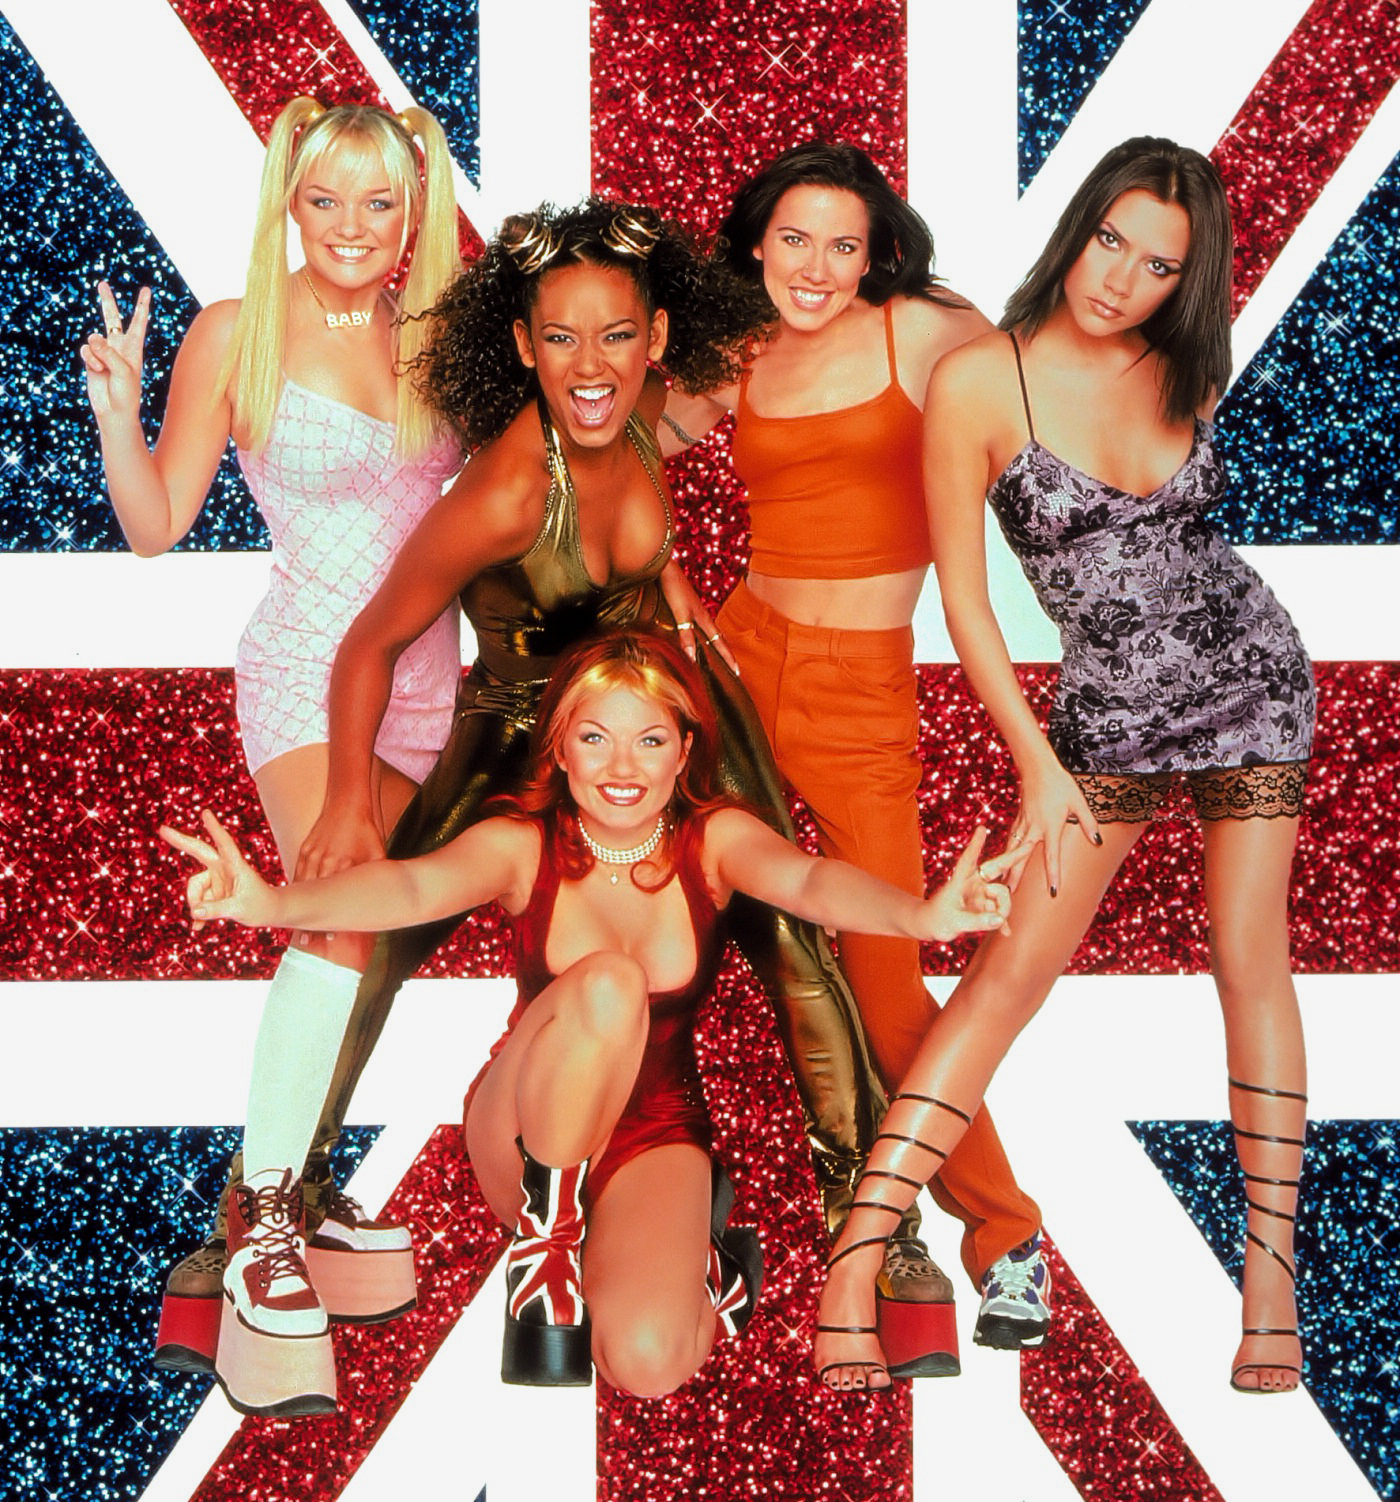 Spice World: Spice Girls -huumaa TV5:llä